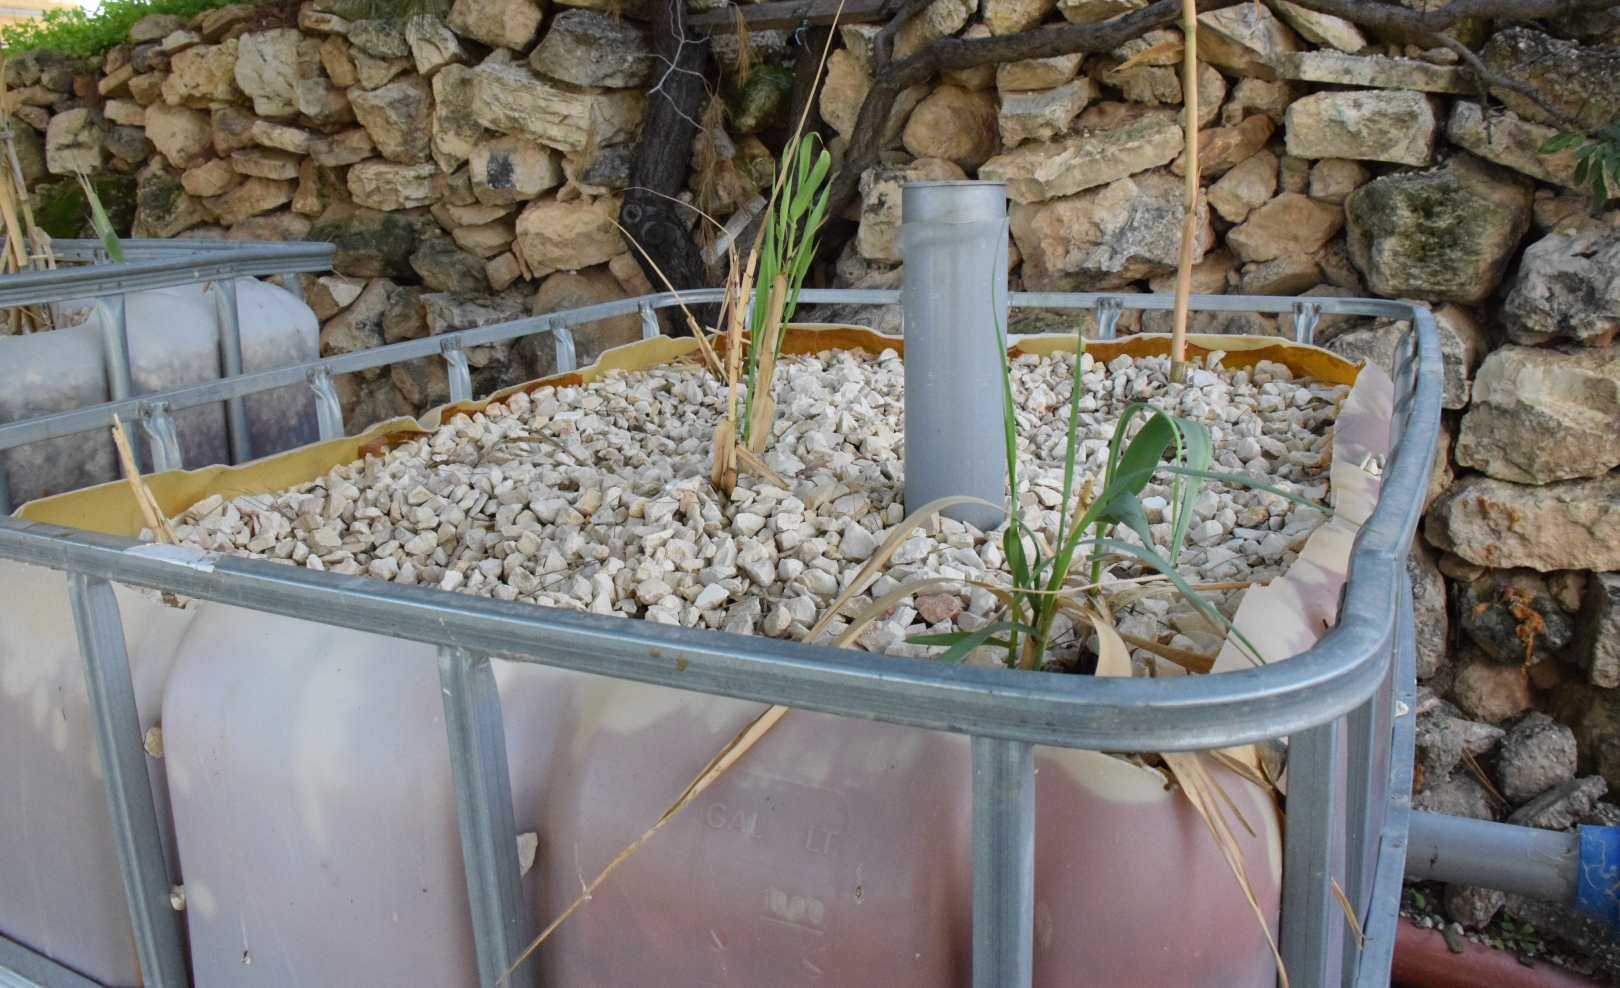 This gravel-based graywater system was developed at the Center for Transboundary Water Management of the Arava Institute. Photo: courtesy